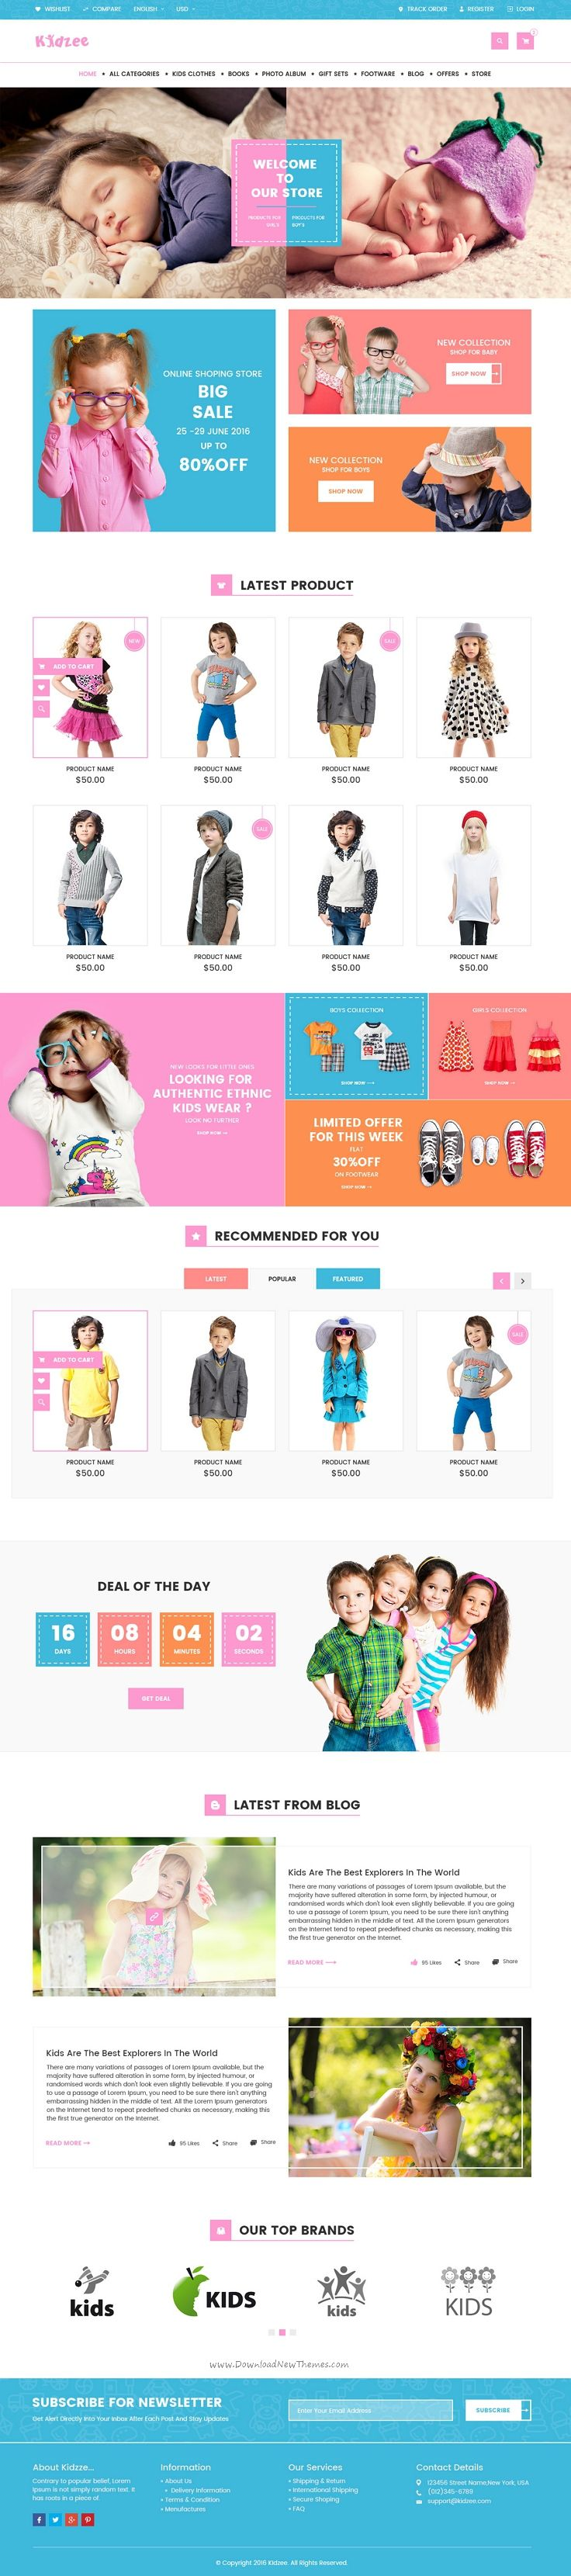 262 best DESIGN Banners images on Pinterest